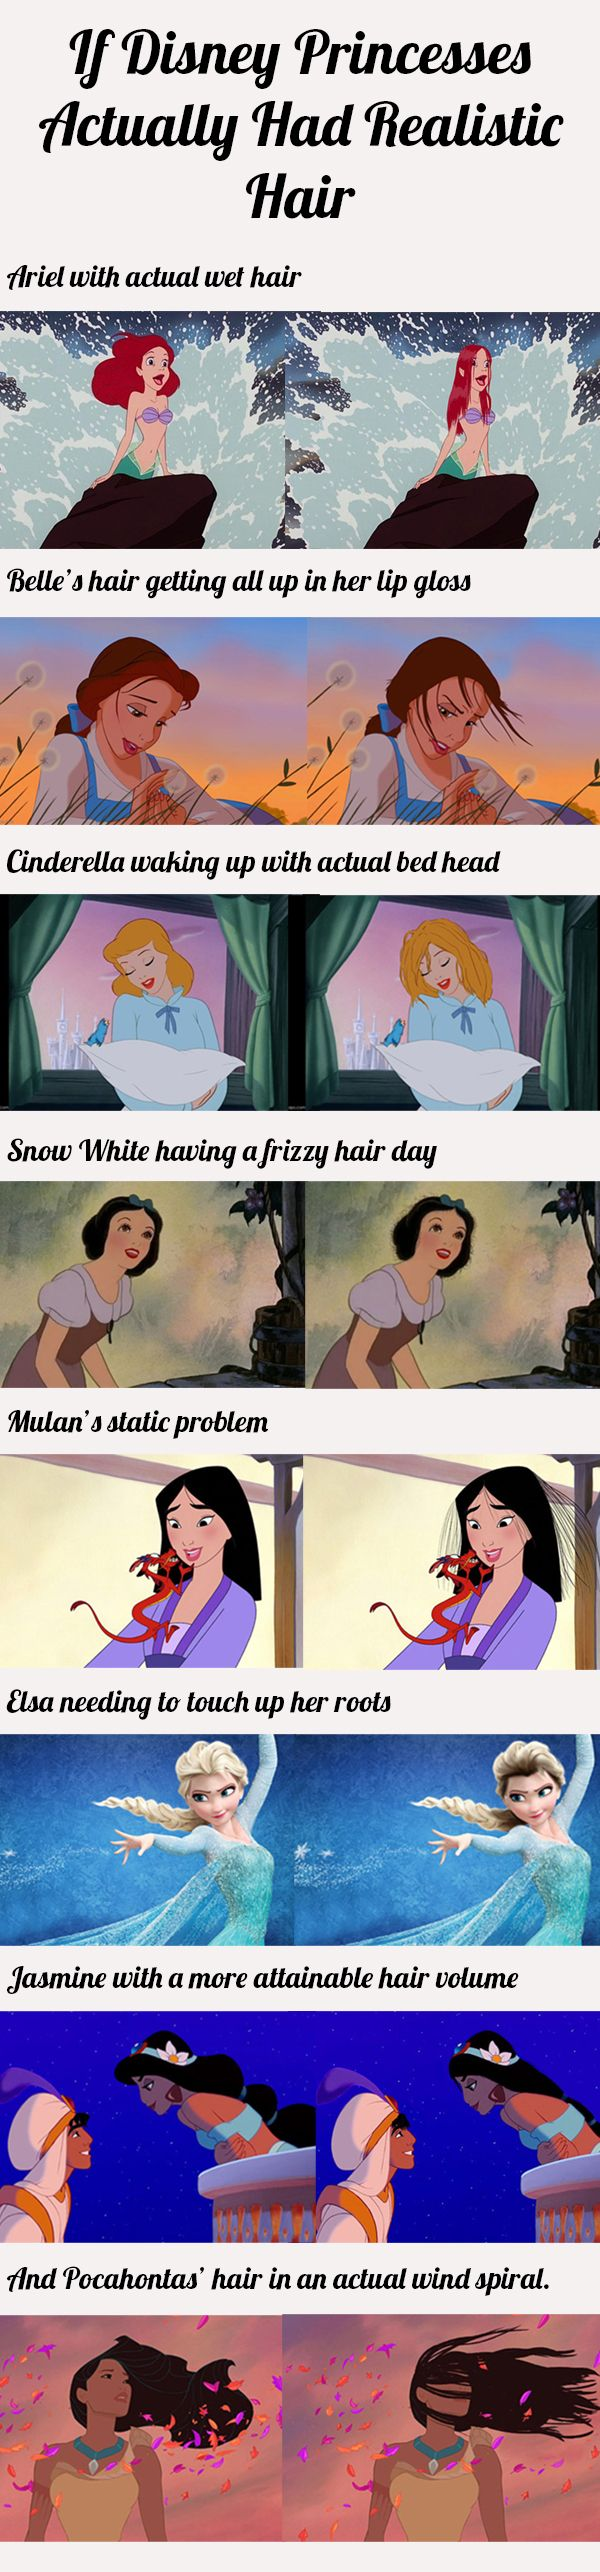 If Disney princesses actually had realistic hair… This is too amazing! #Humor